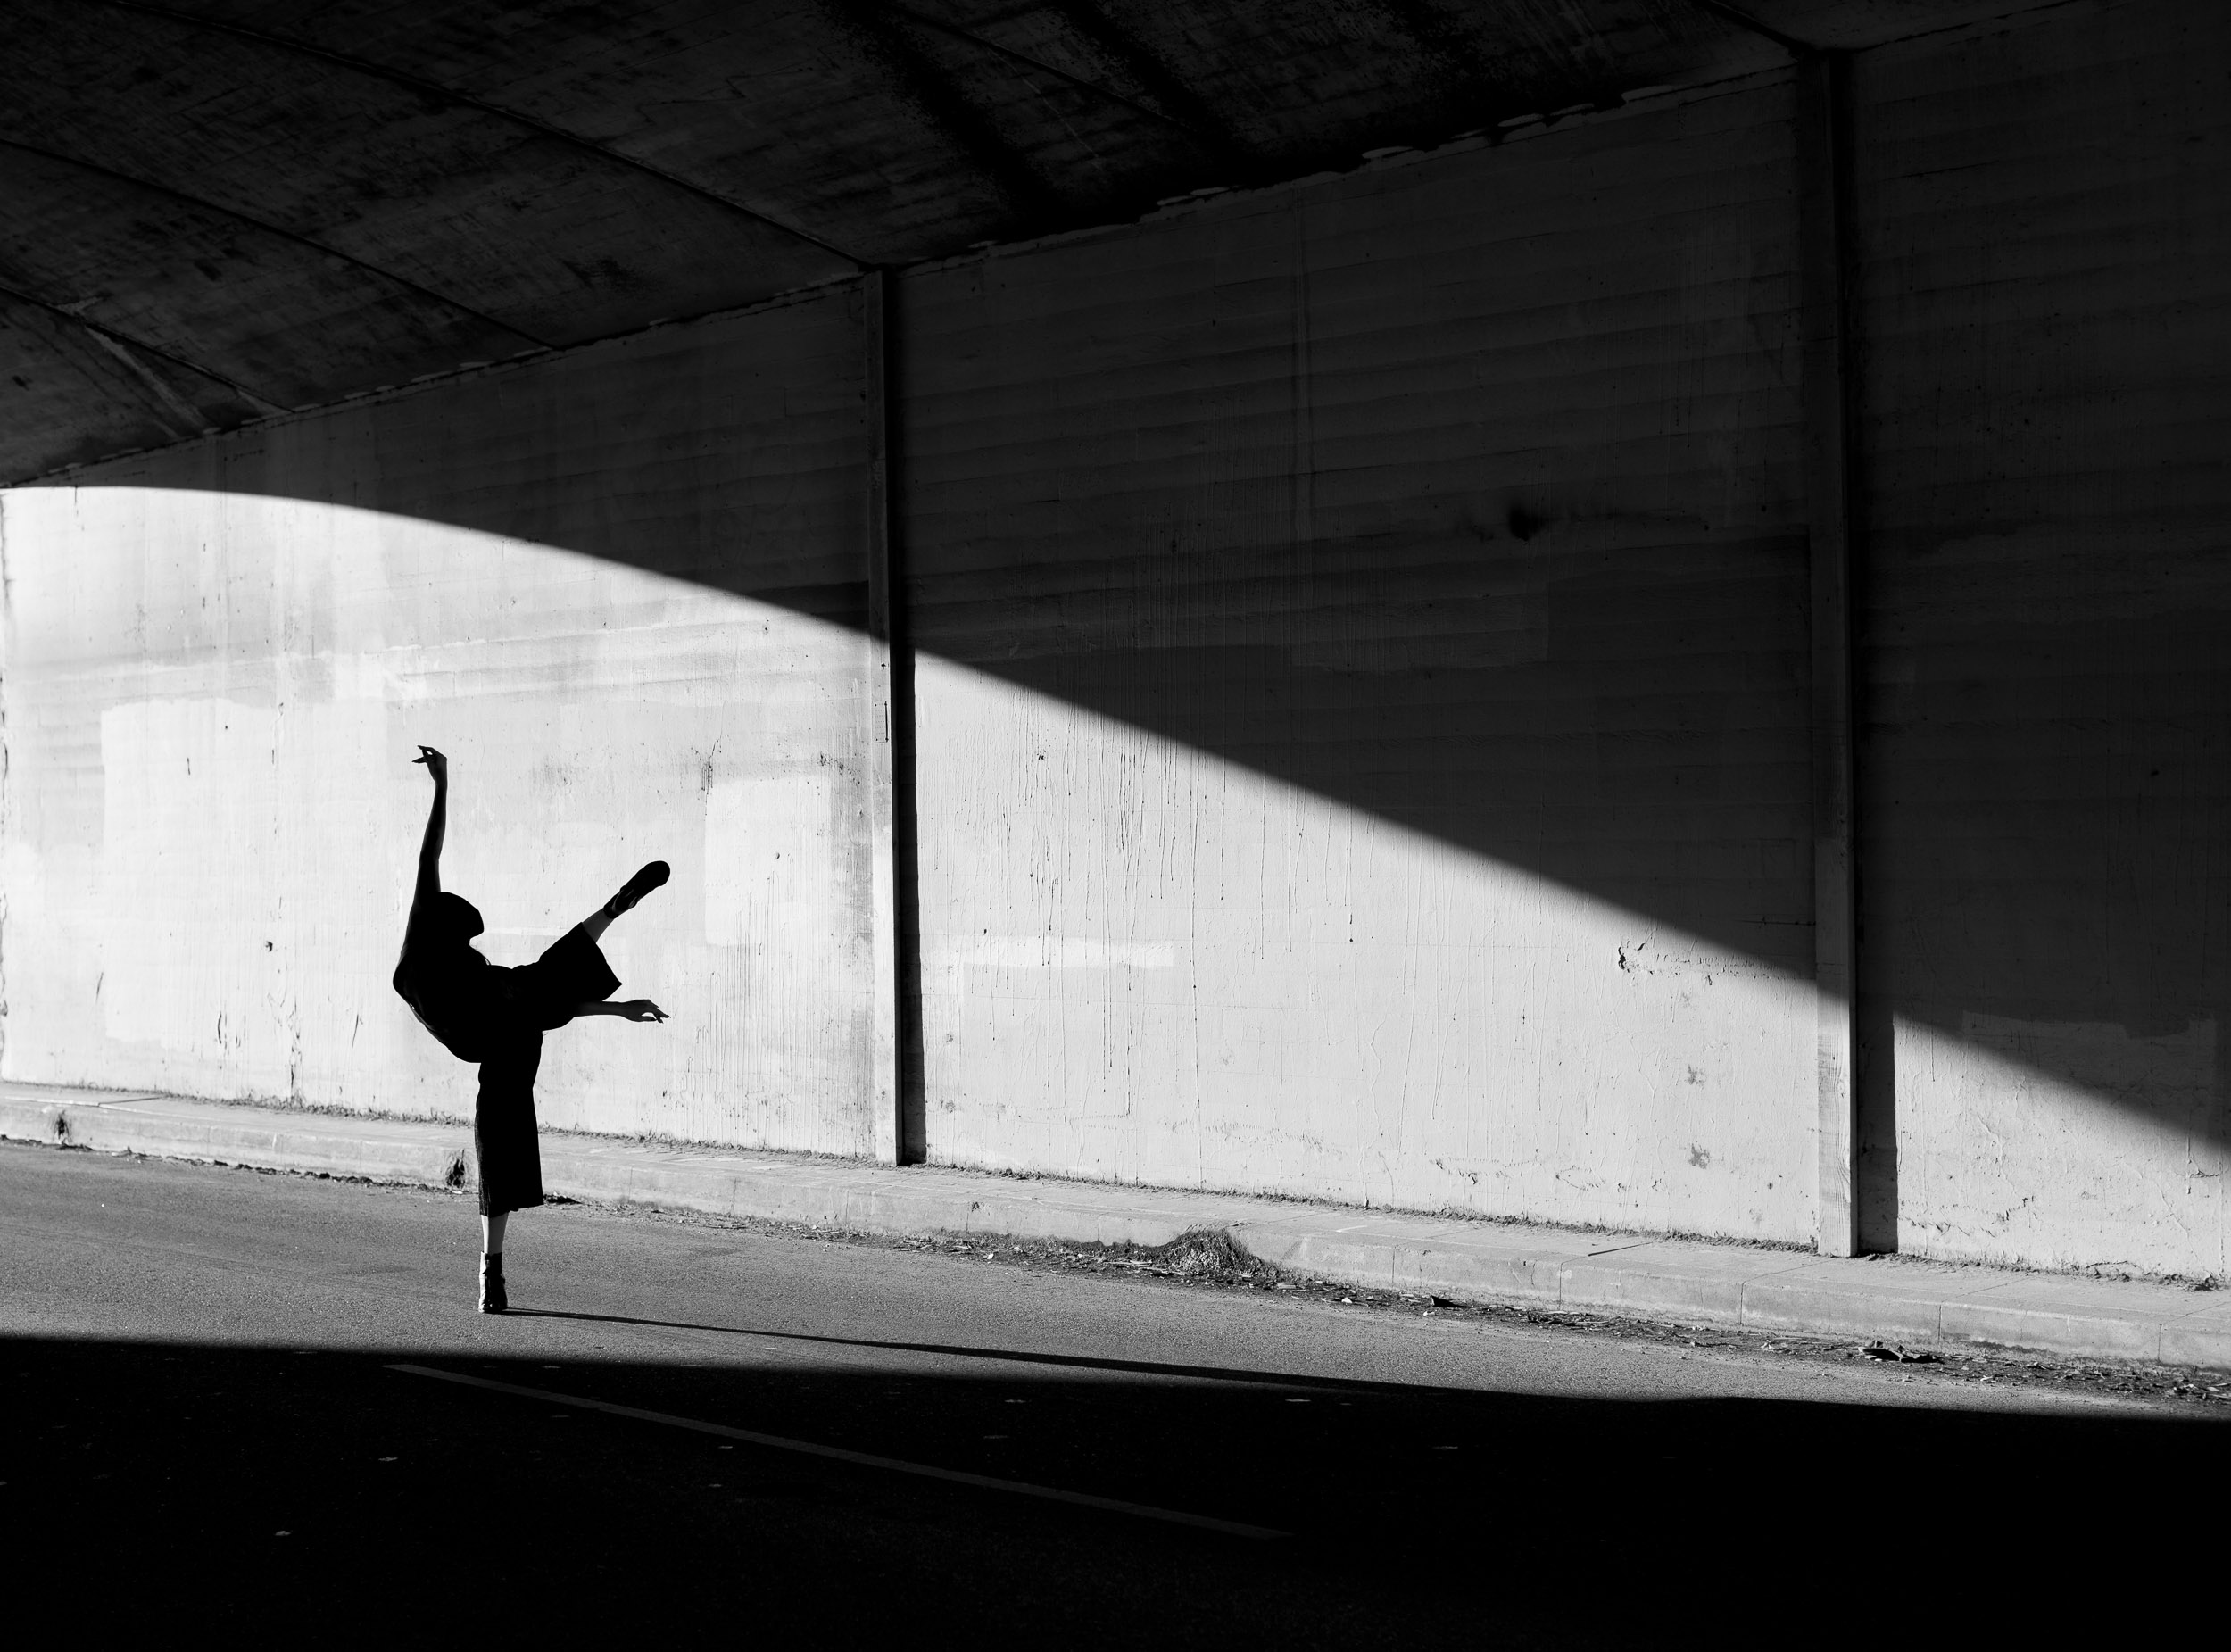 Silouette Justine Lutz Ashley Barker bridge LA photographer